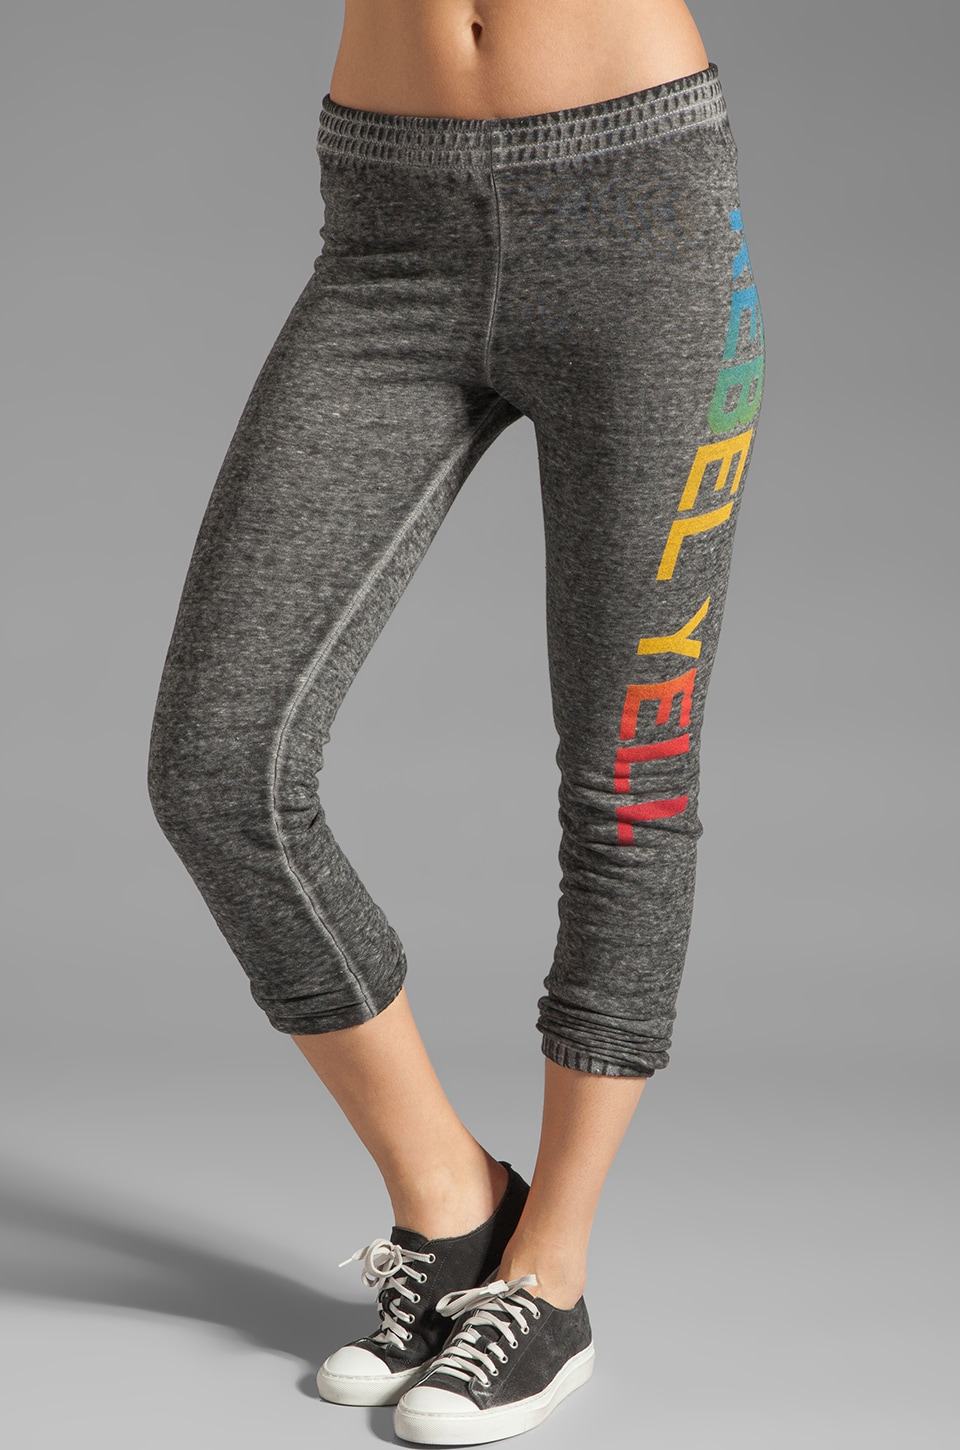 Rebel Yell RY Favorite Sweats in Black